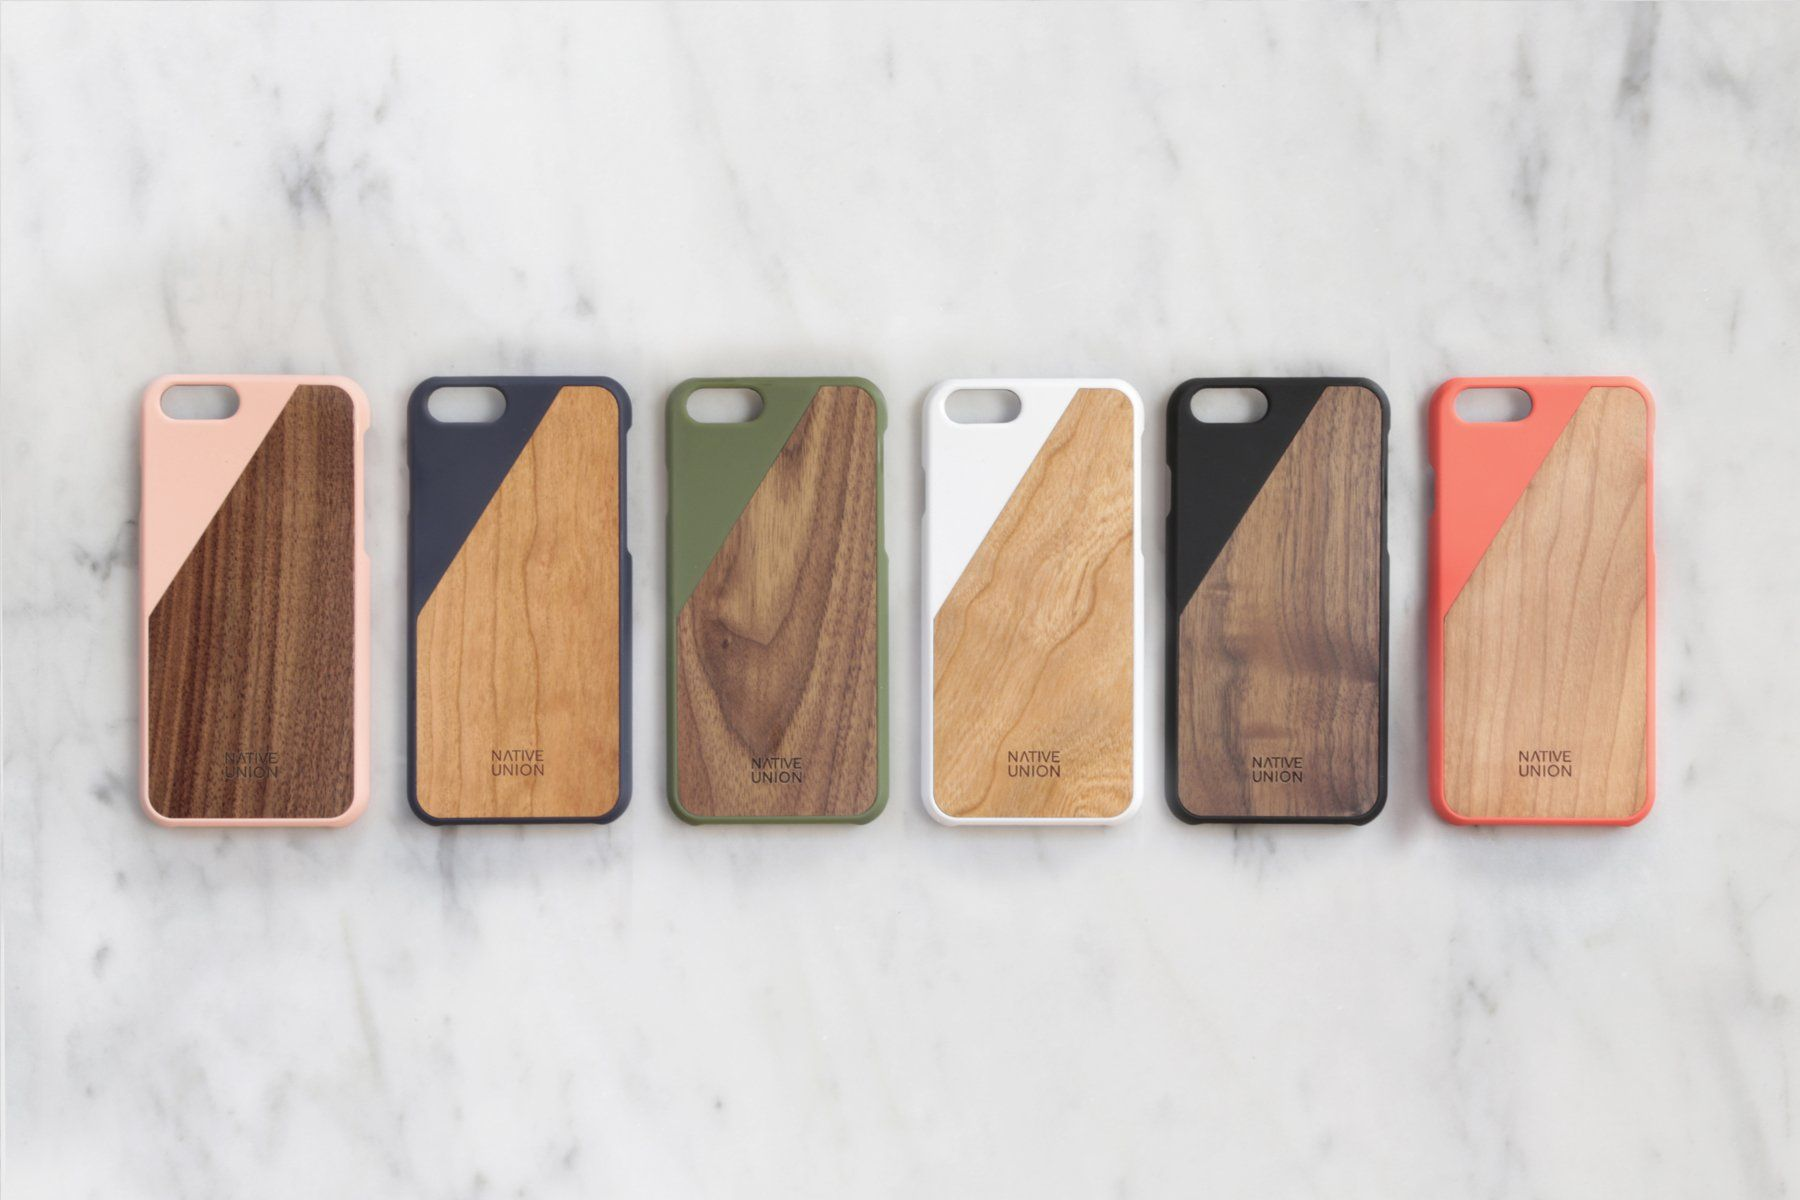 Native Union Clic Wooden Case for iPhone 6 $40 | Iphone, Wooden ...